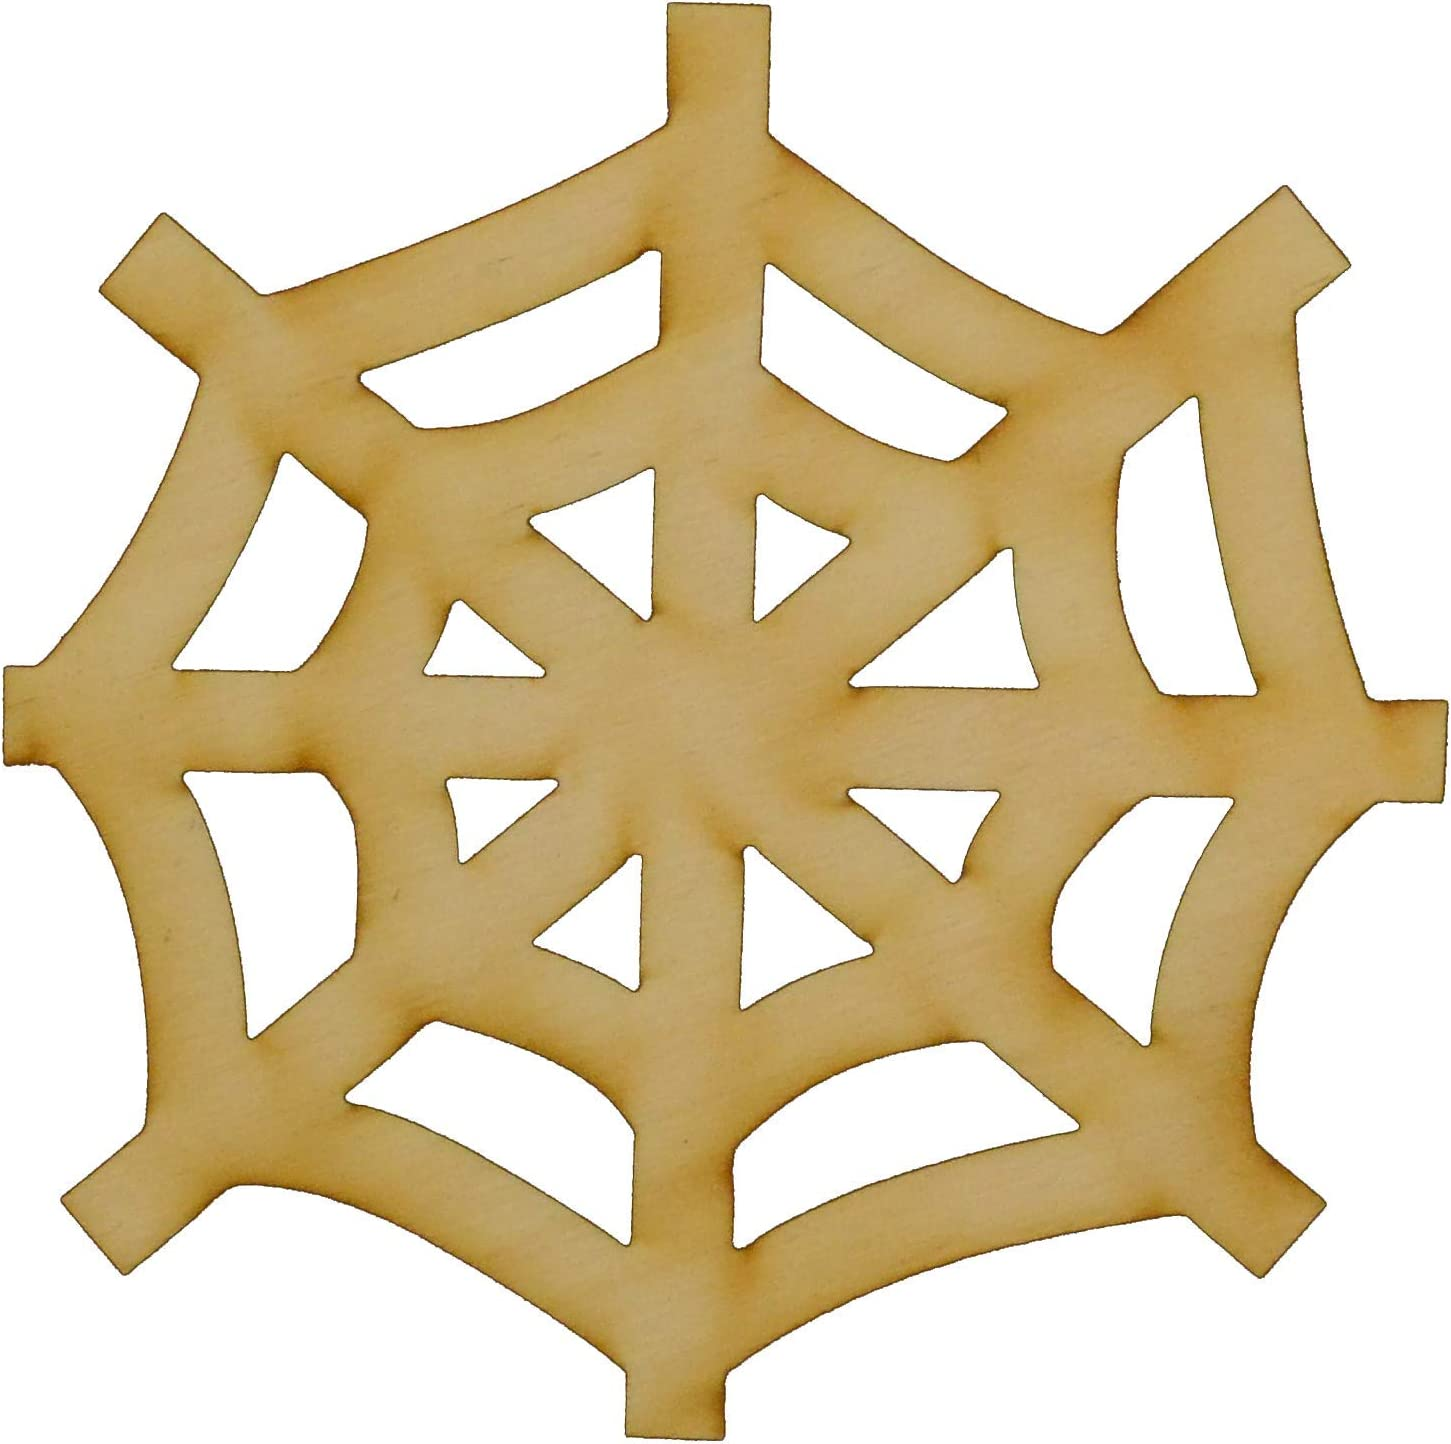 Unfinished Spiderweb Wood Cutout Available Lowest price challenge Variety service a in of Sizes